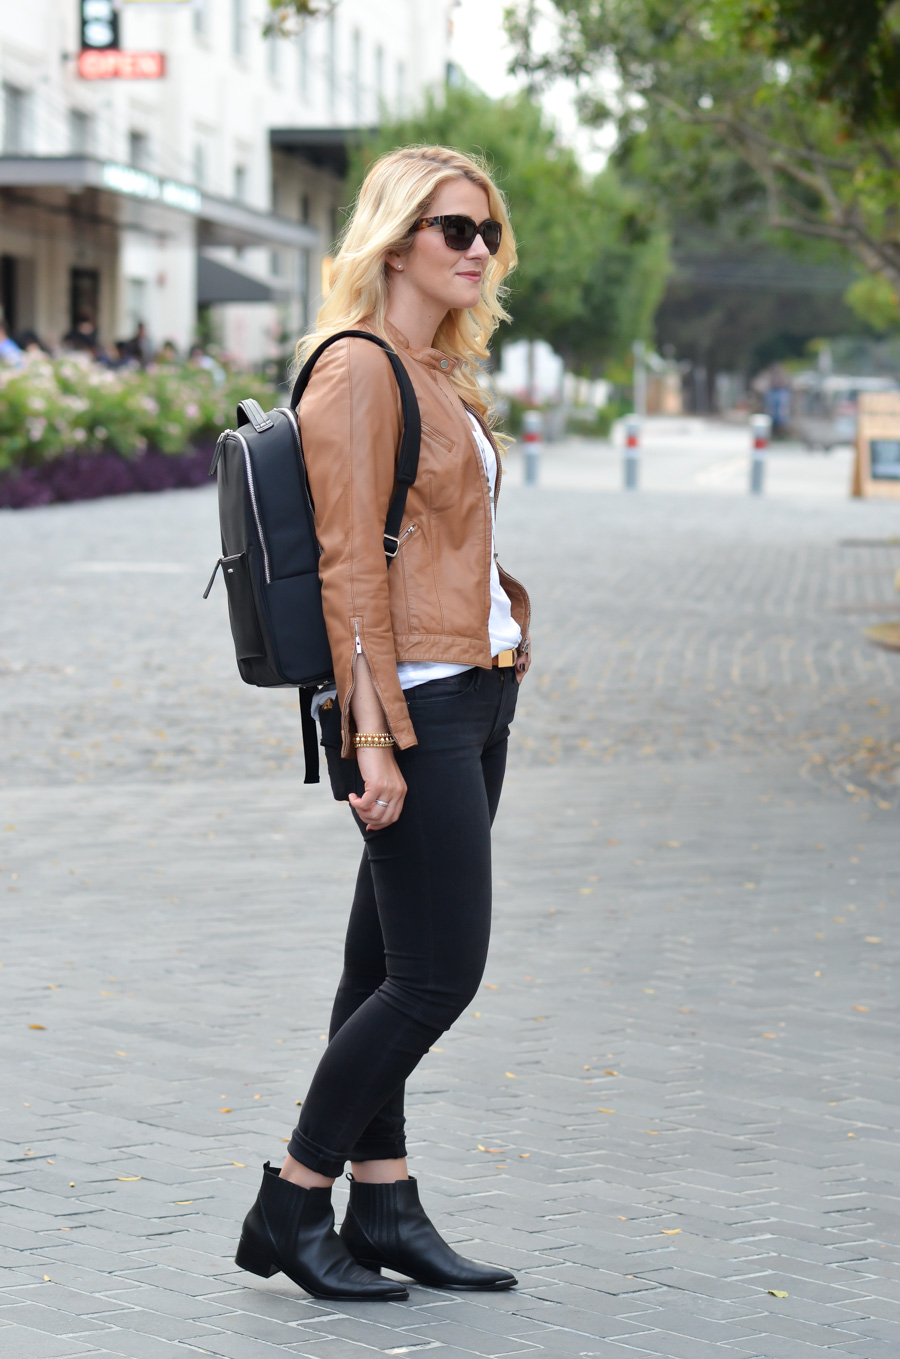 Backpack Outfits for Stylish Women - Tan Leather Jacket + Black Jeans